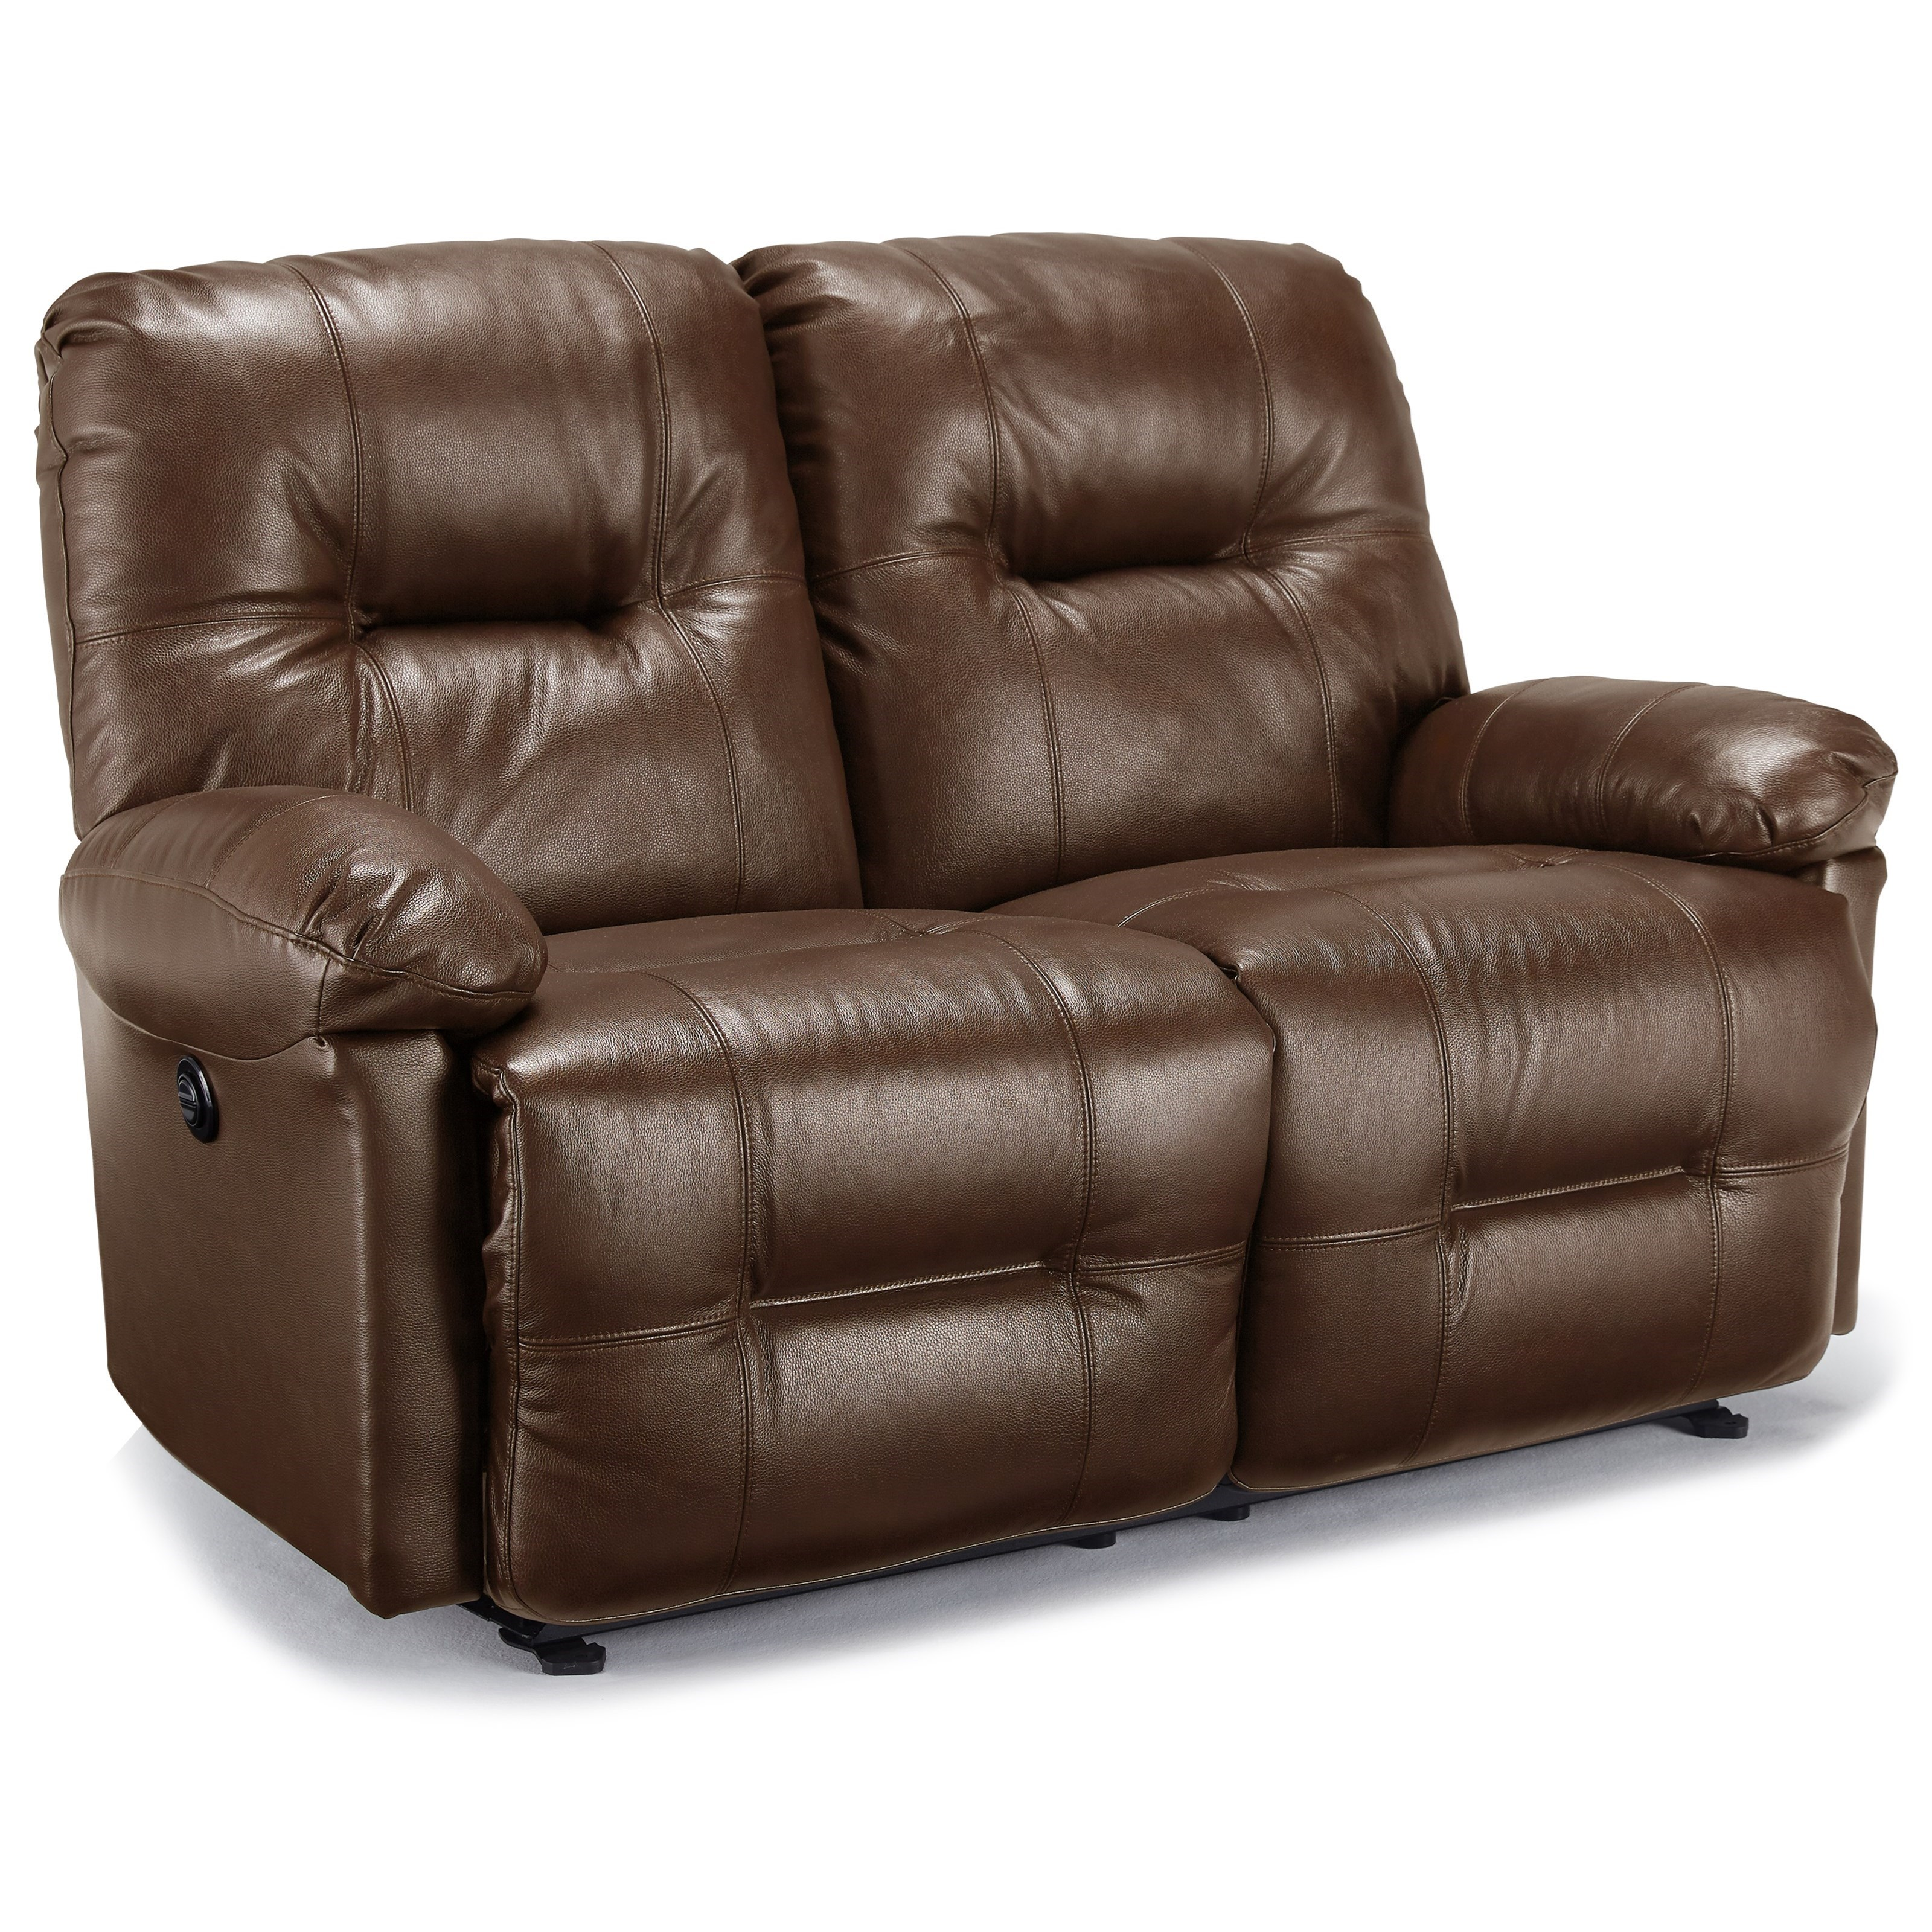 Surprising Best Home Furnishings S501 Zaynah L501Ca4 Casual Reclining Forskolin Free Trial Chair Design Images Forskolin Free Trialorg